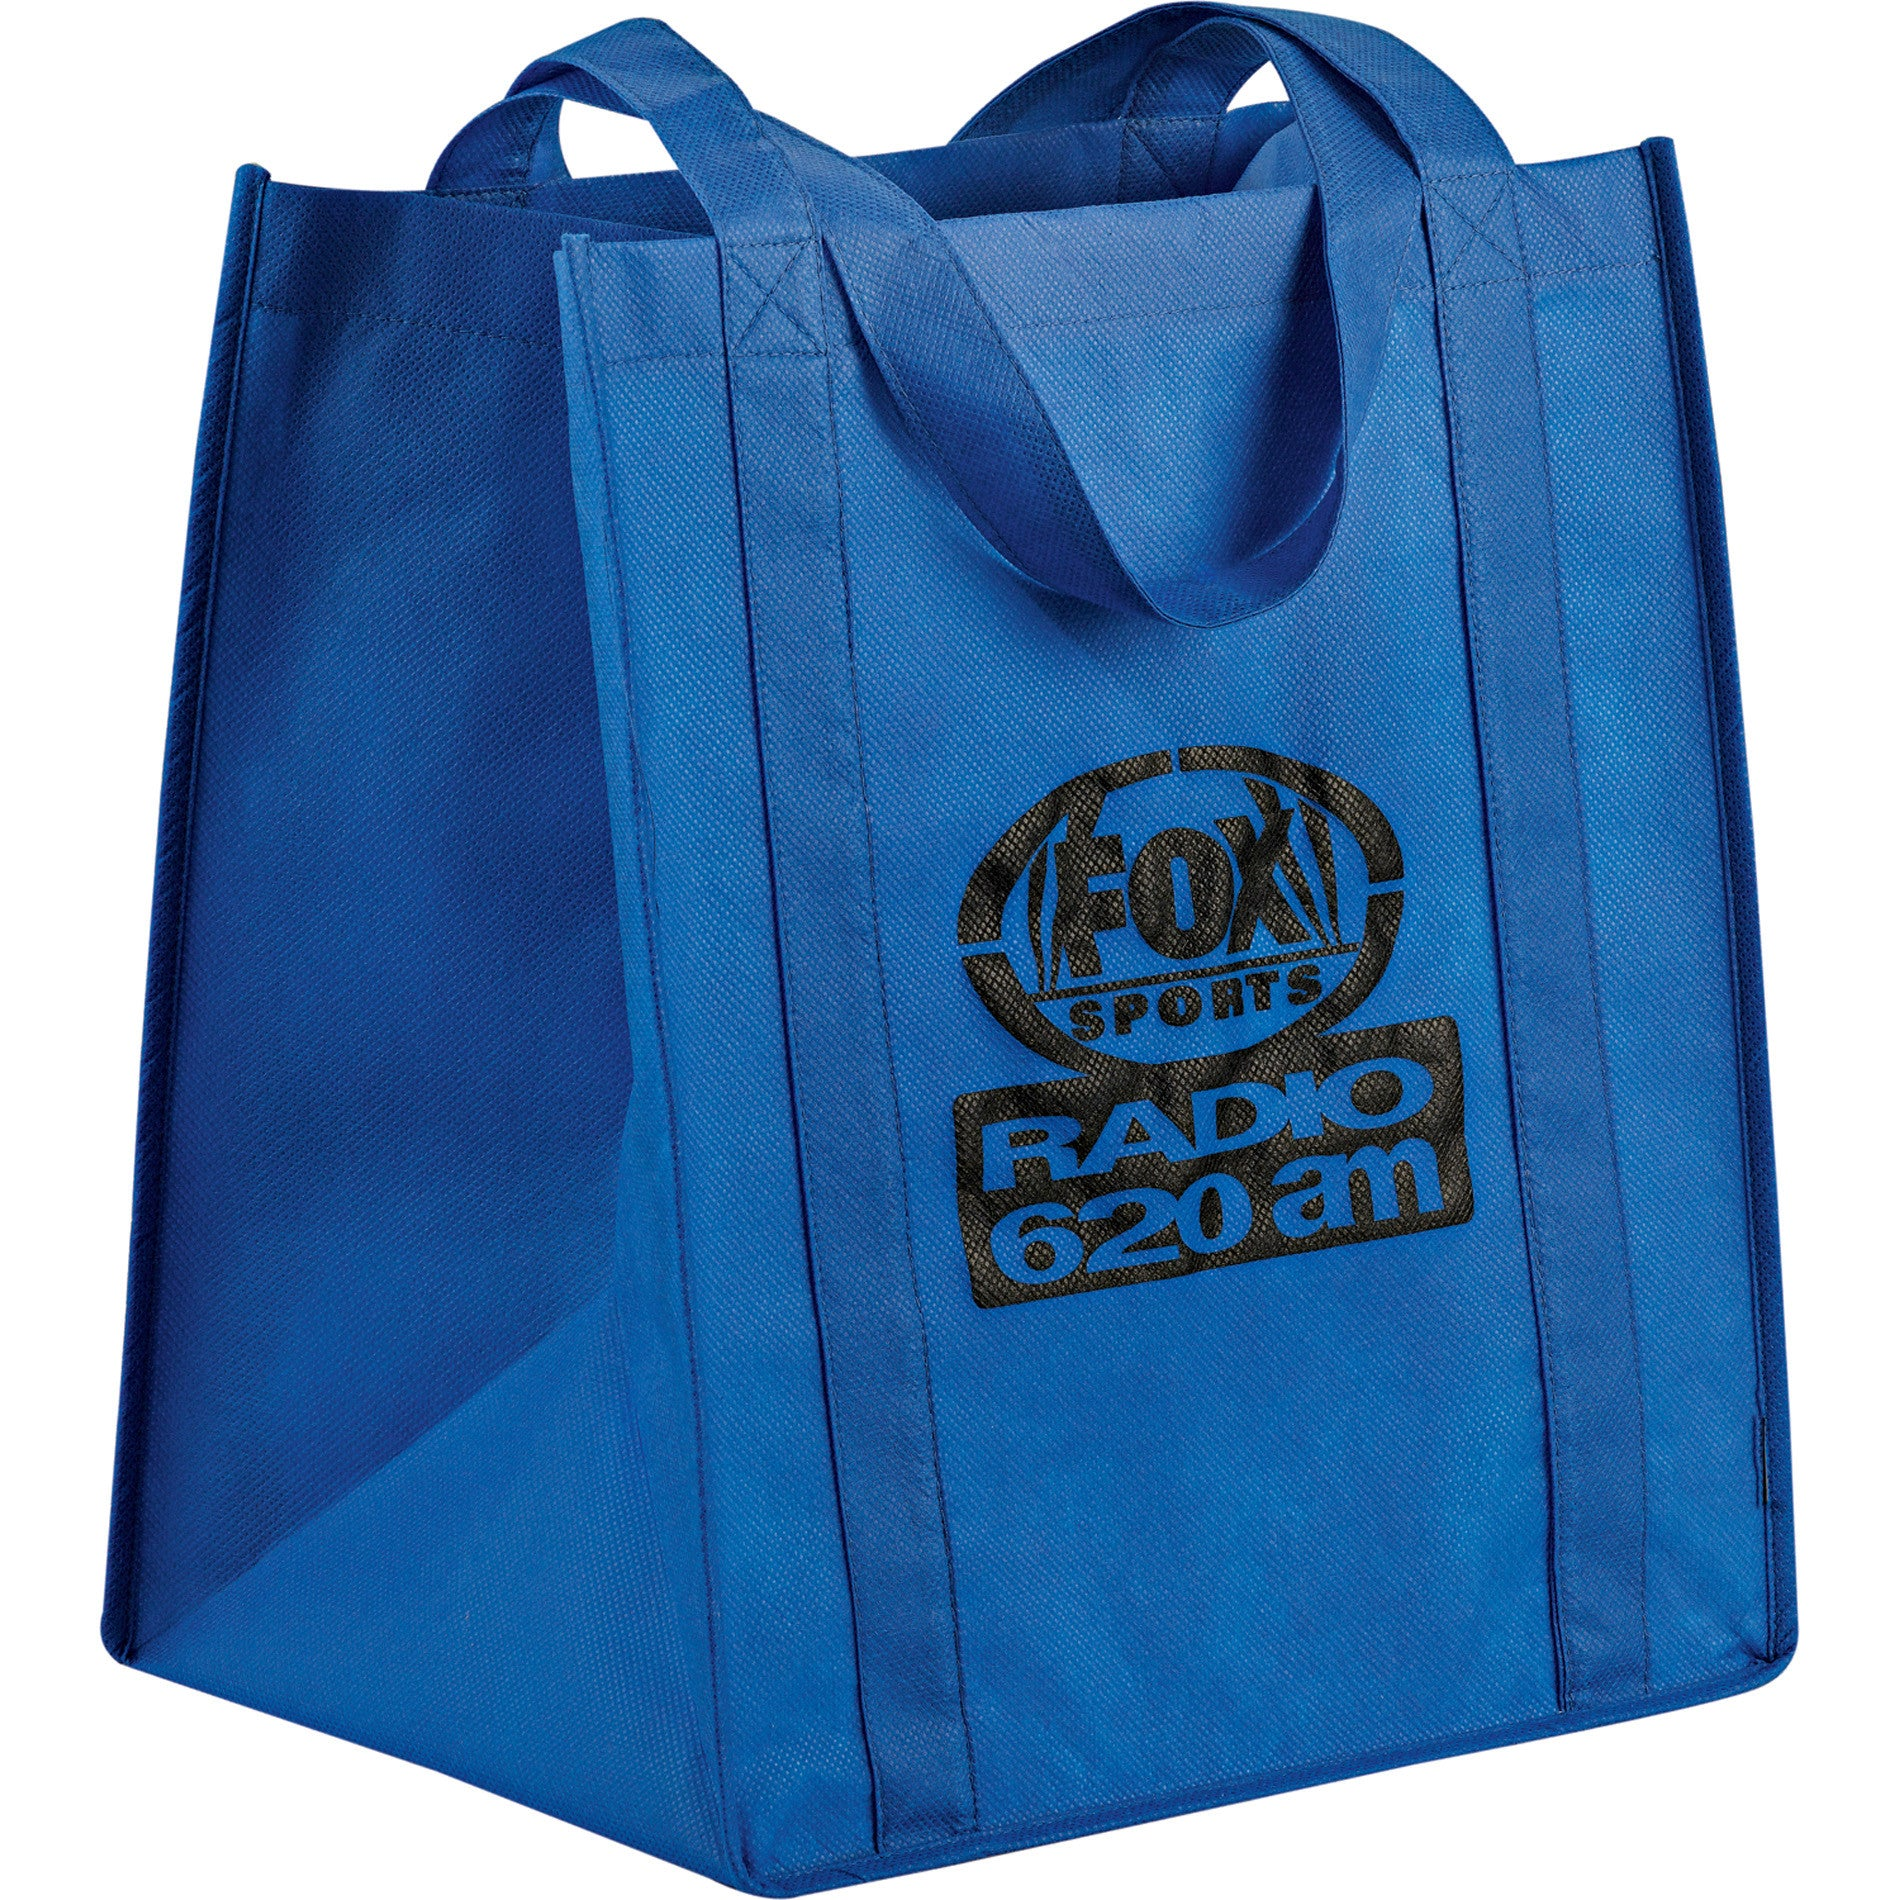 Environmentally Friendly Shopping Bags